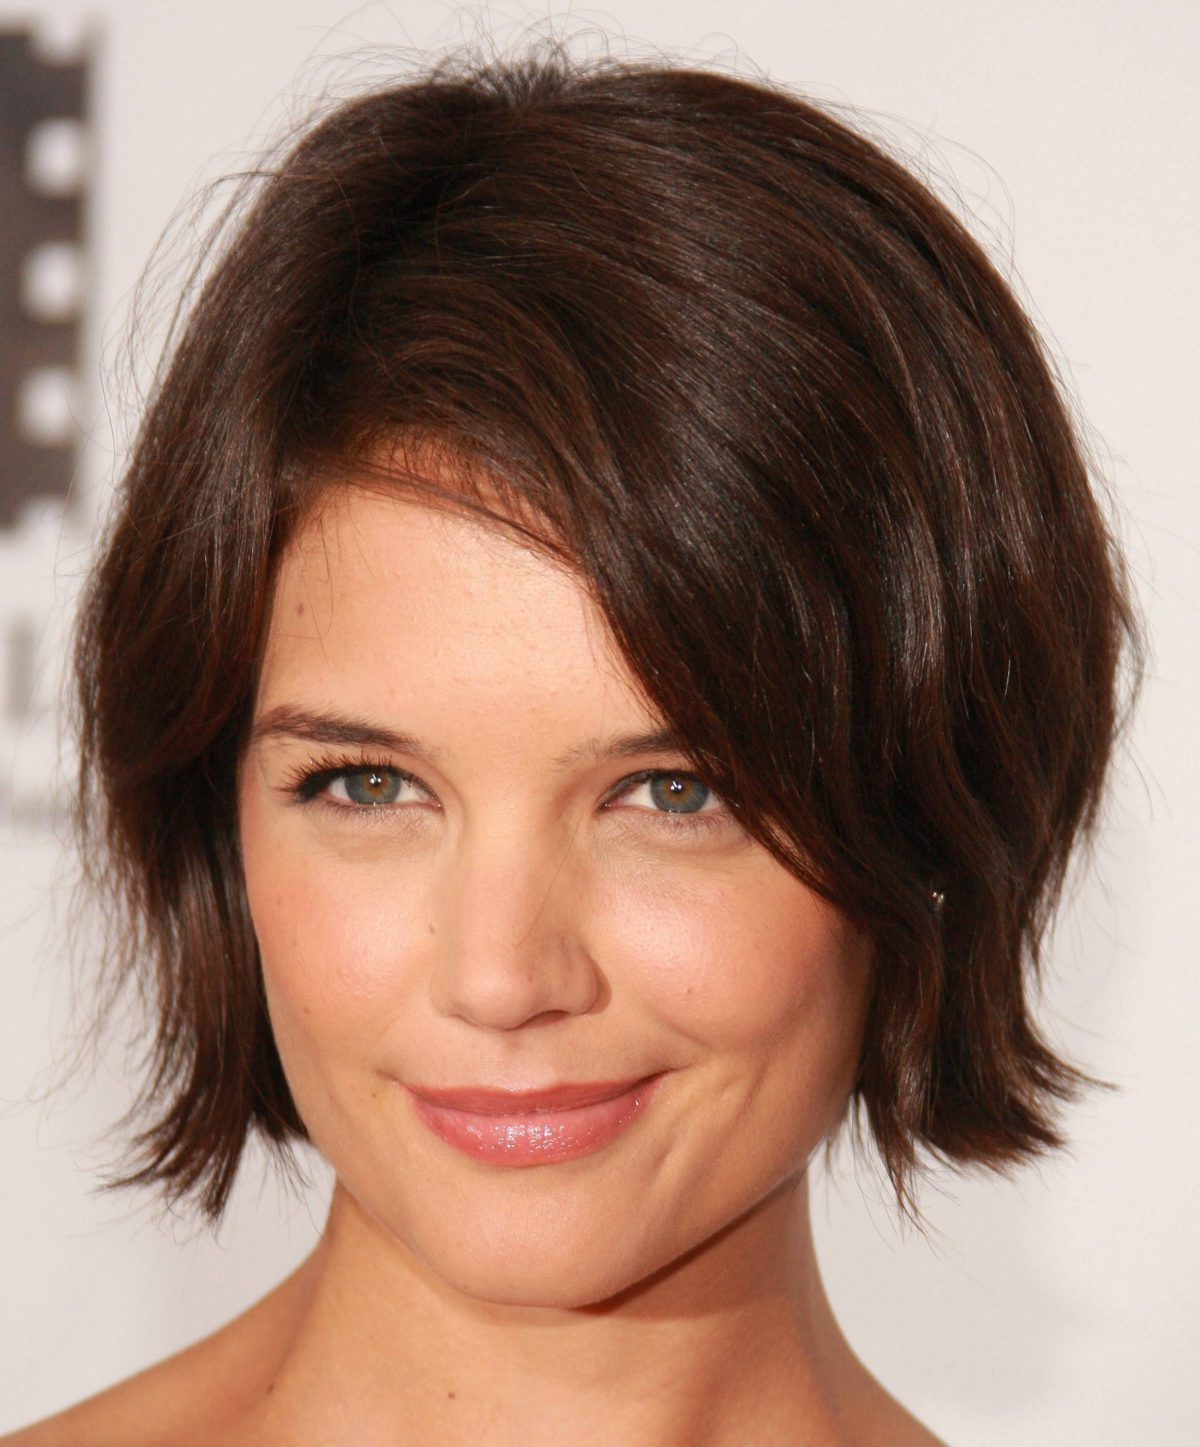 Best Short Hairstyles – Cute Hair Cut Guide For Round Face Shape Pertaining To Womens Short Haircuts For Round Faces (View 4 of 25)